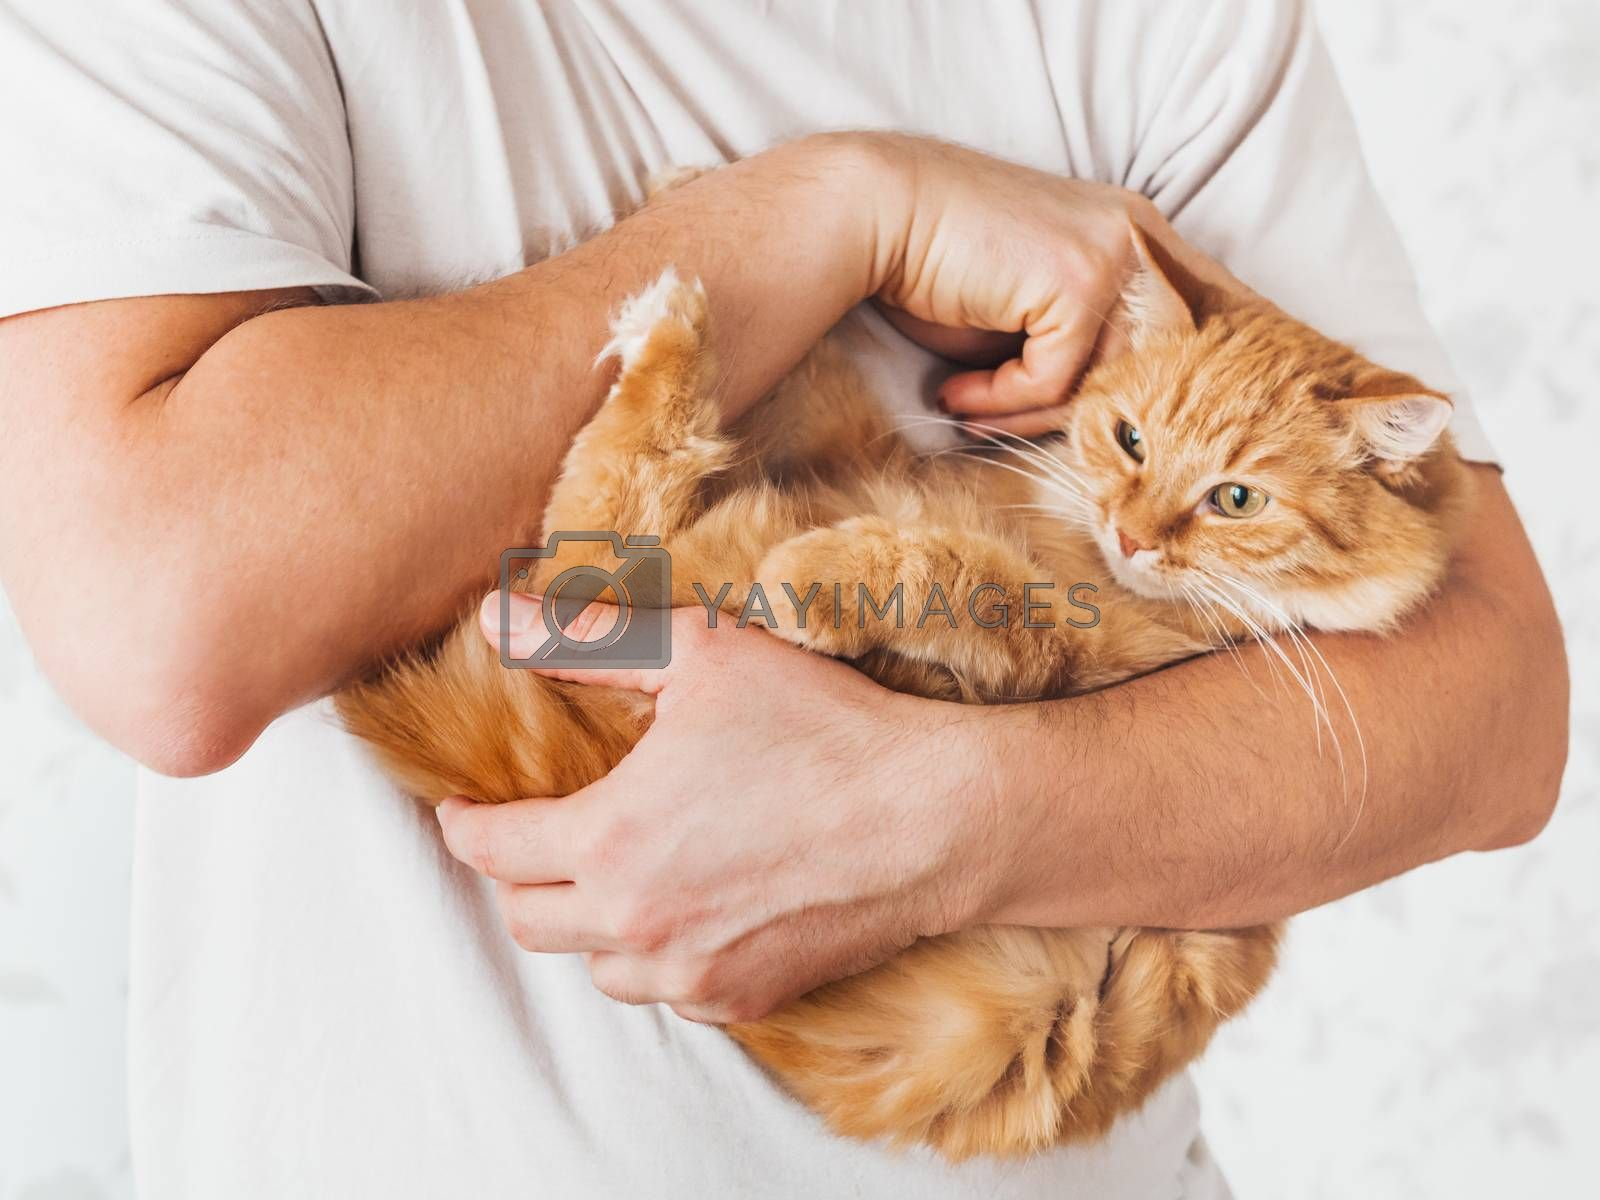 Man cuddles cute ginger cat. Fluffy pet looks pleased and sleepy. Fuzzy domestic animal. Cat lover.